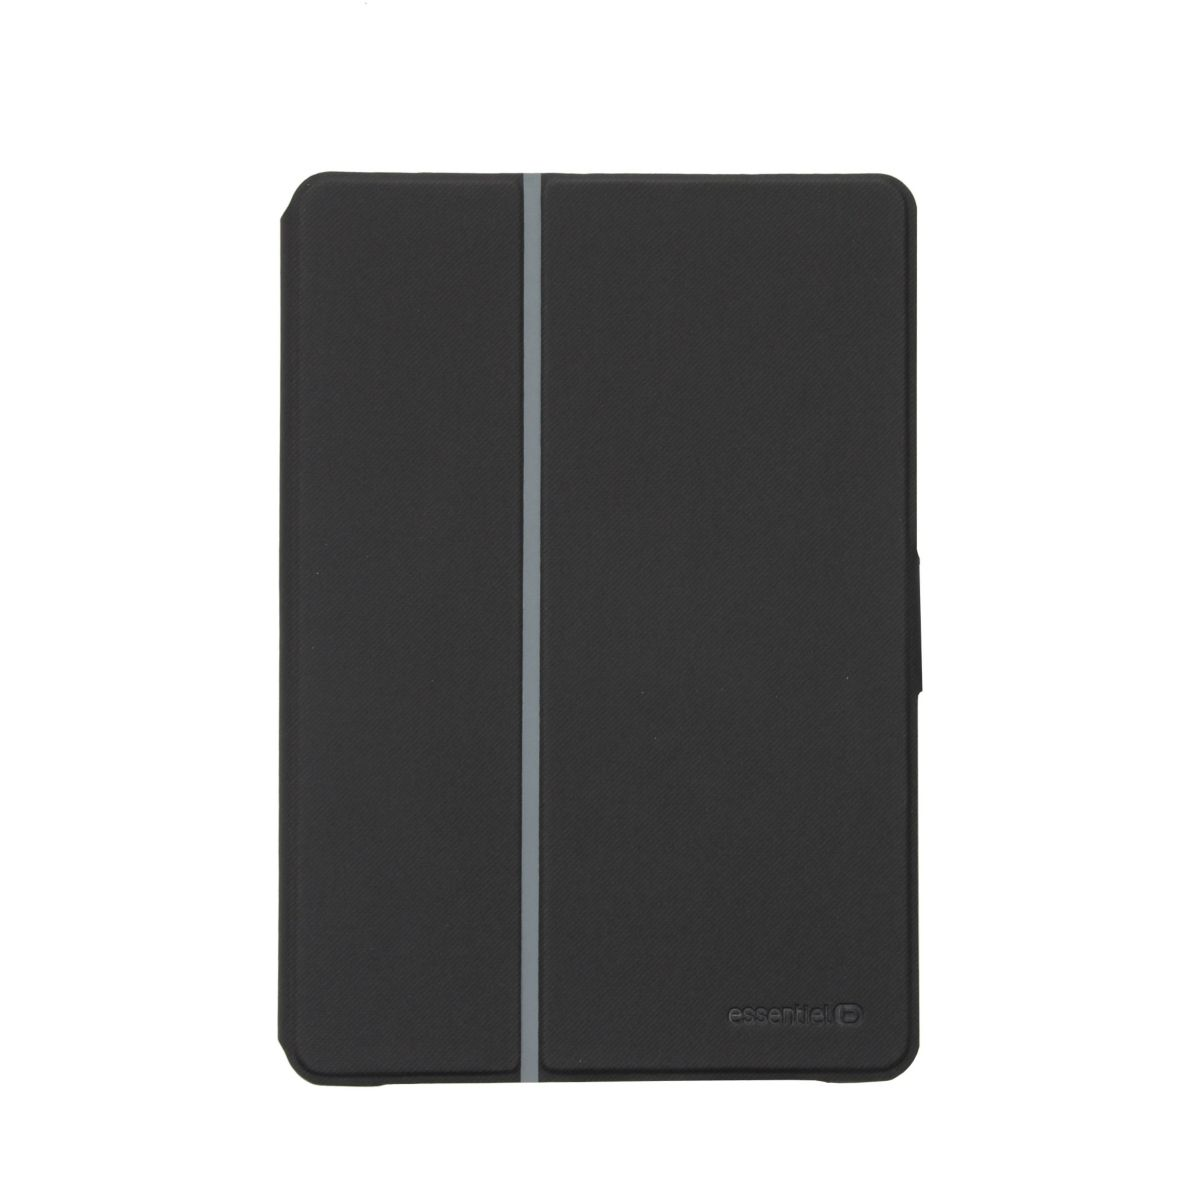 Etui ESSENTIELB rotatif 9,7'' Samsung Tab S2 noir (photo)